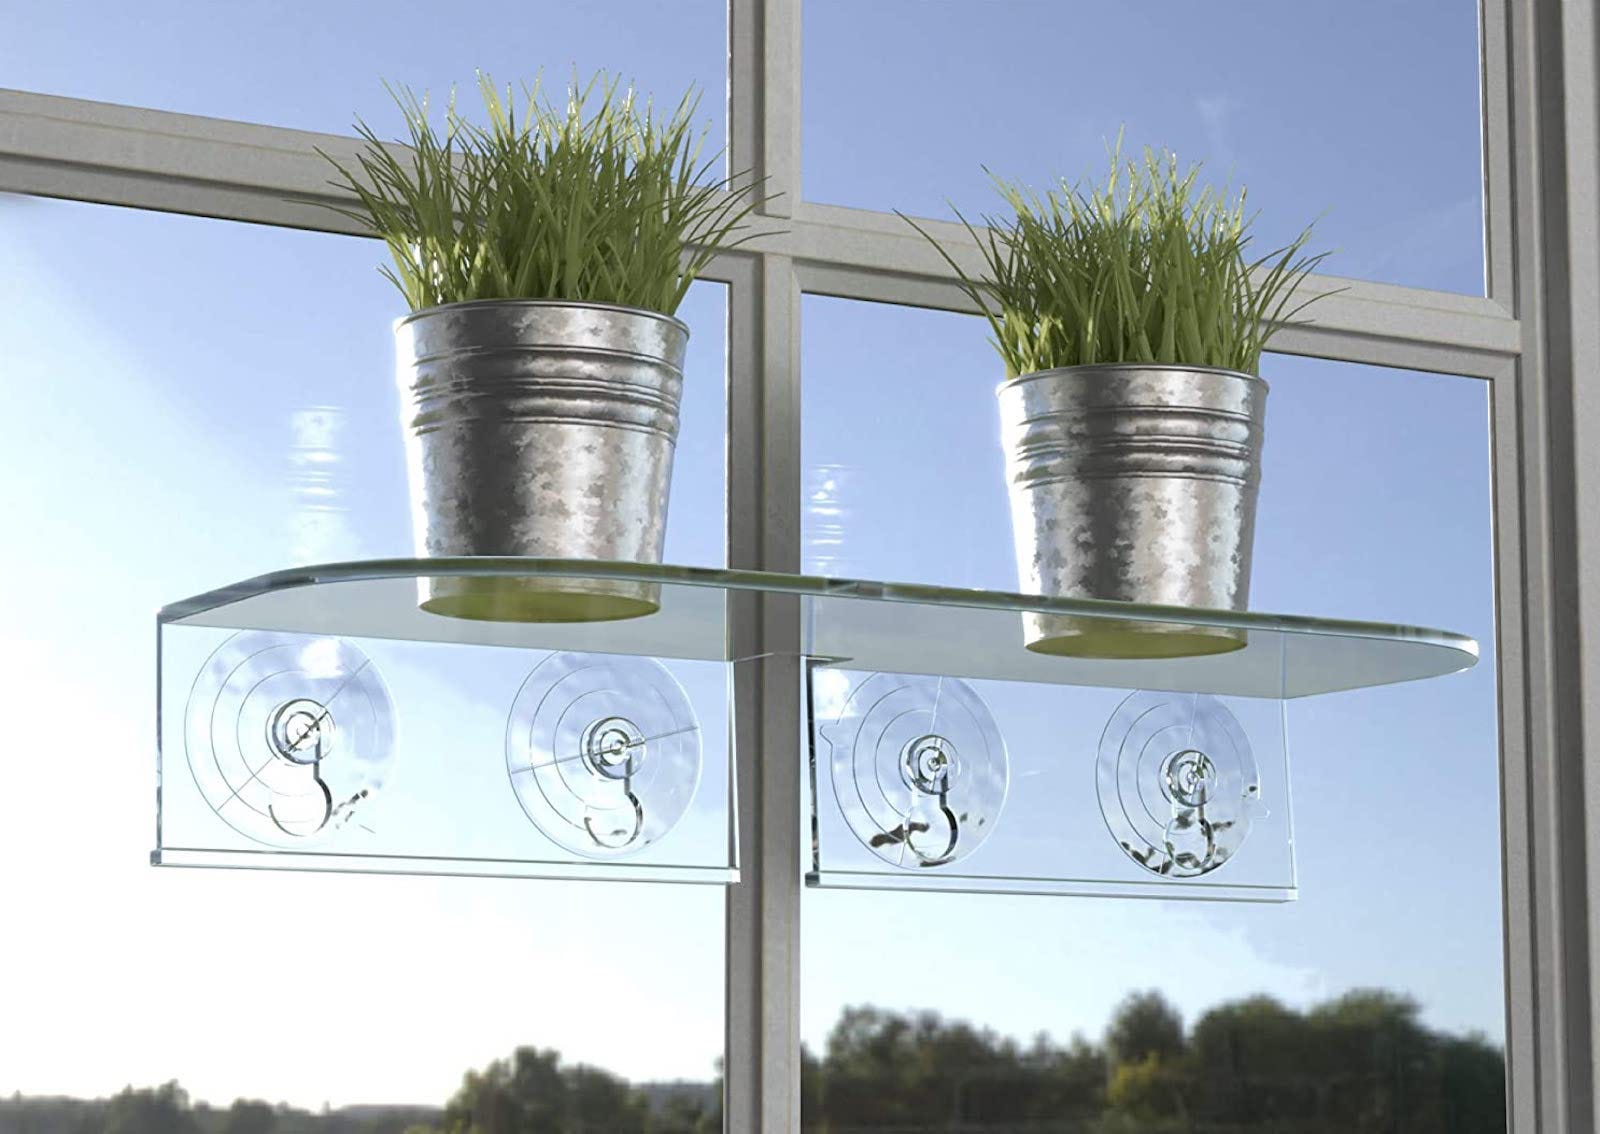 Two small plants in metal pots sit on a clear acrylic shelf attached to a sunny window